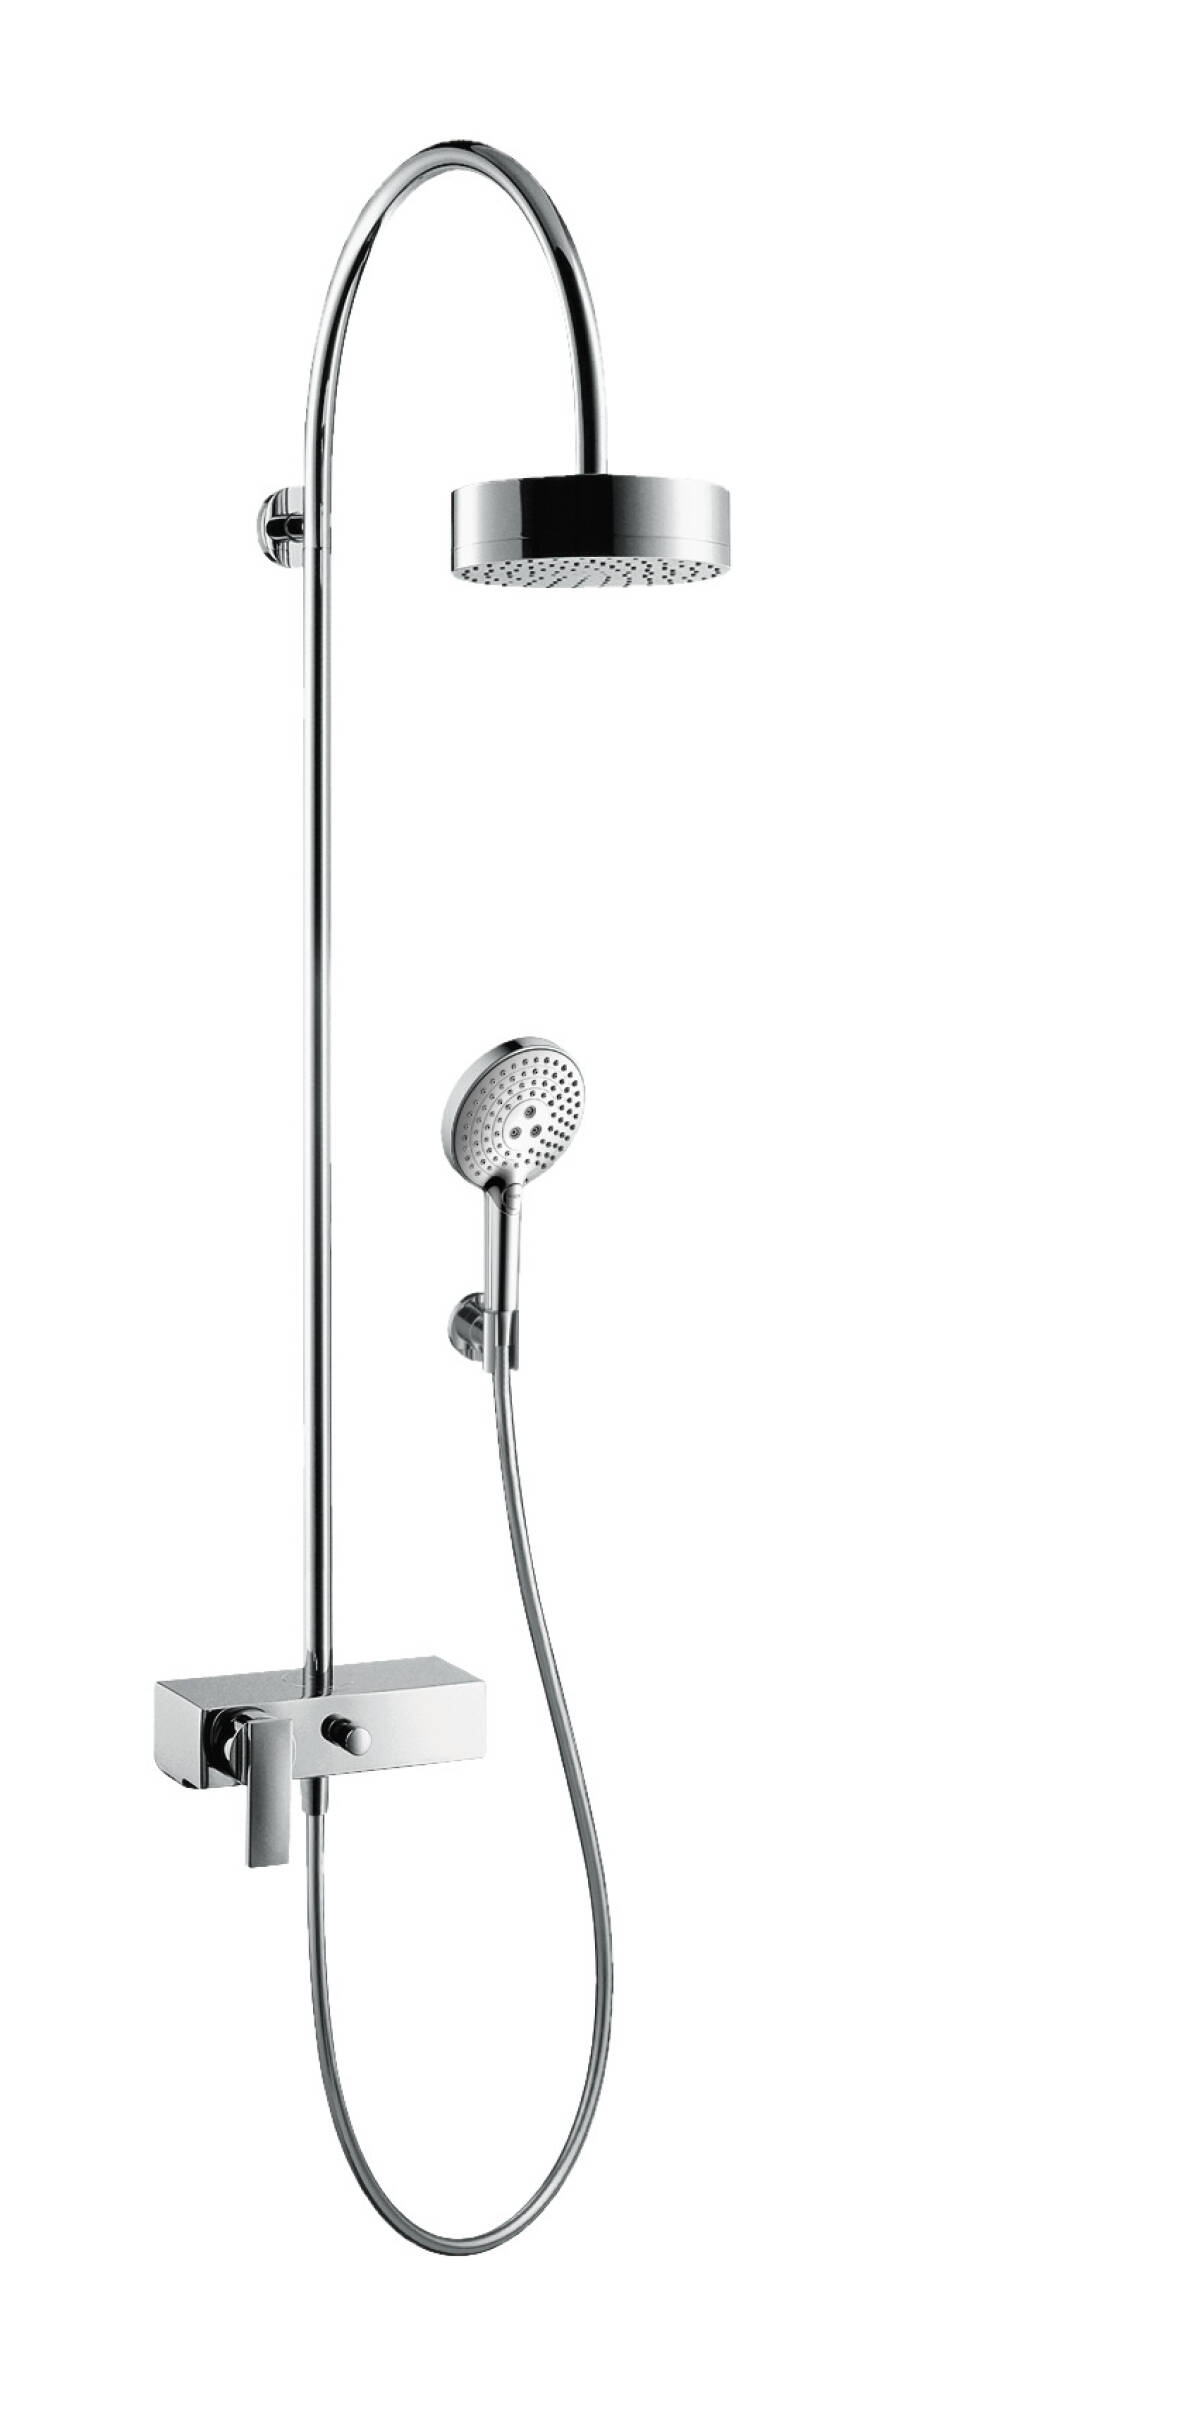 Showerpipe with single lever mixer and overhead shower 180 1jet, Brushed Bronze, 39620140